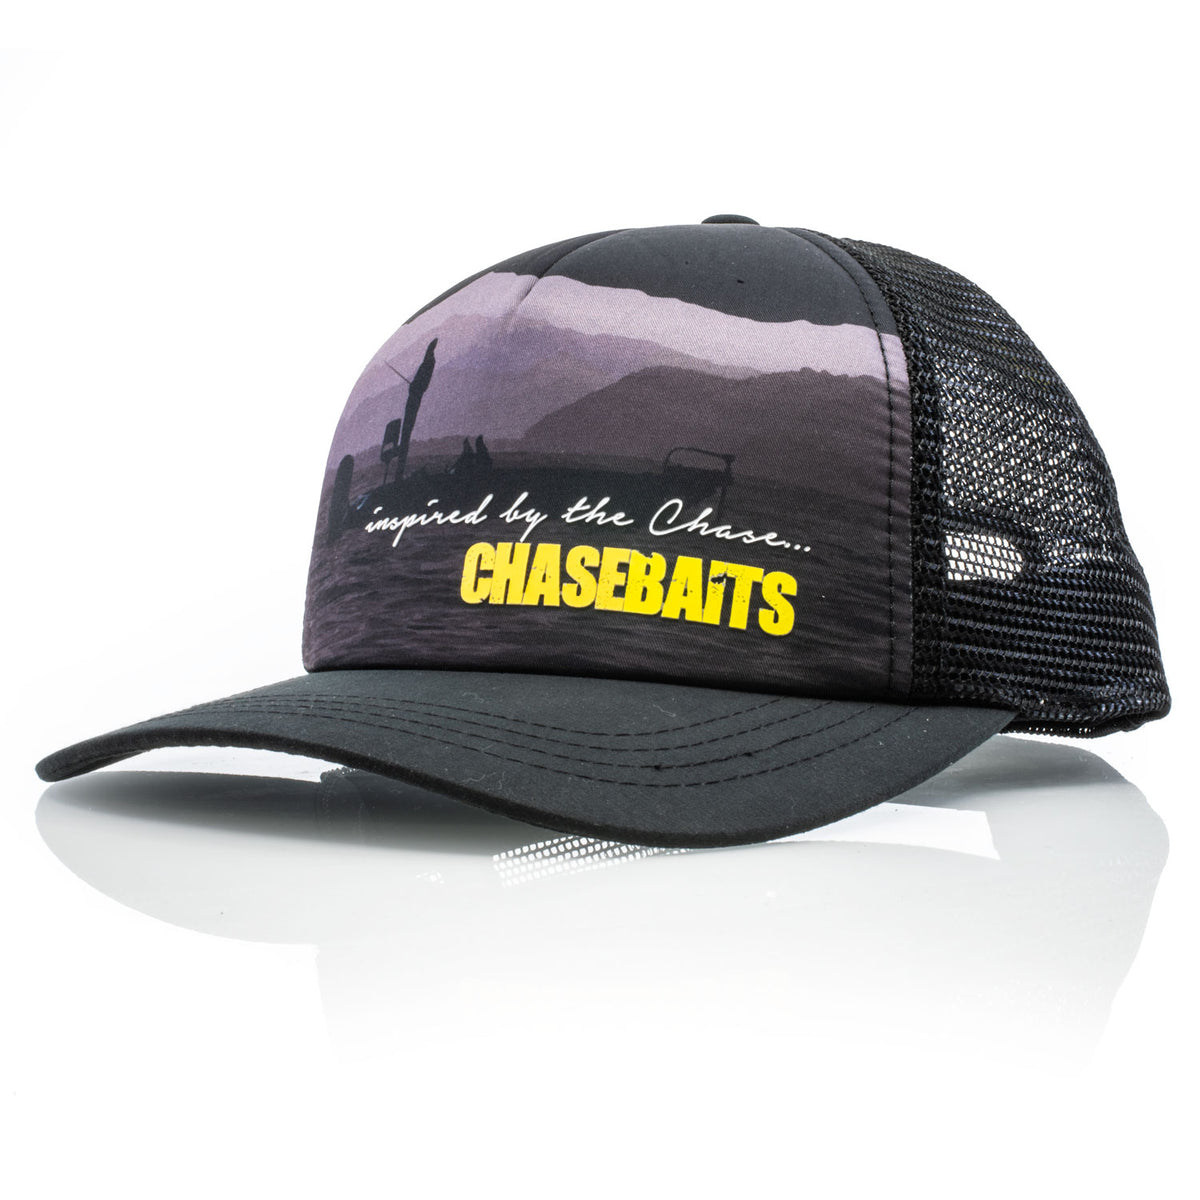 "Chasebaits ""Silhouette"" Hat"